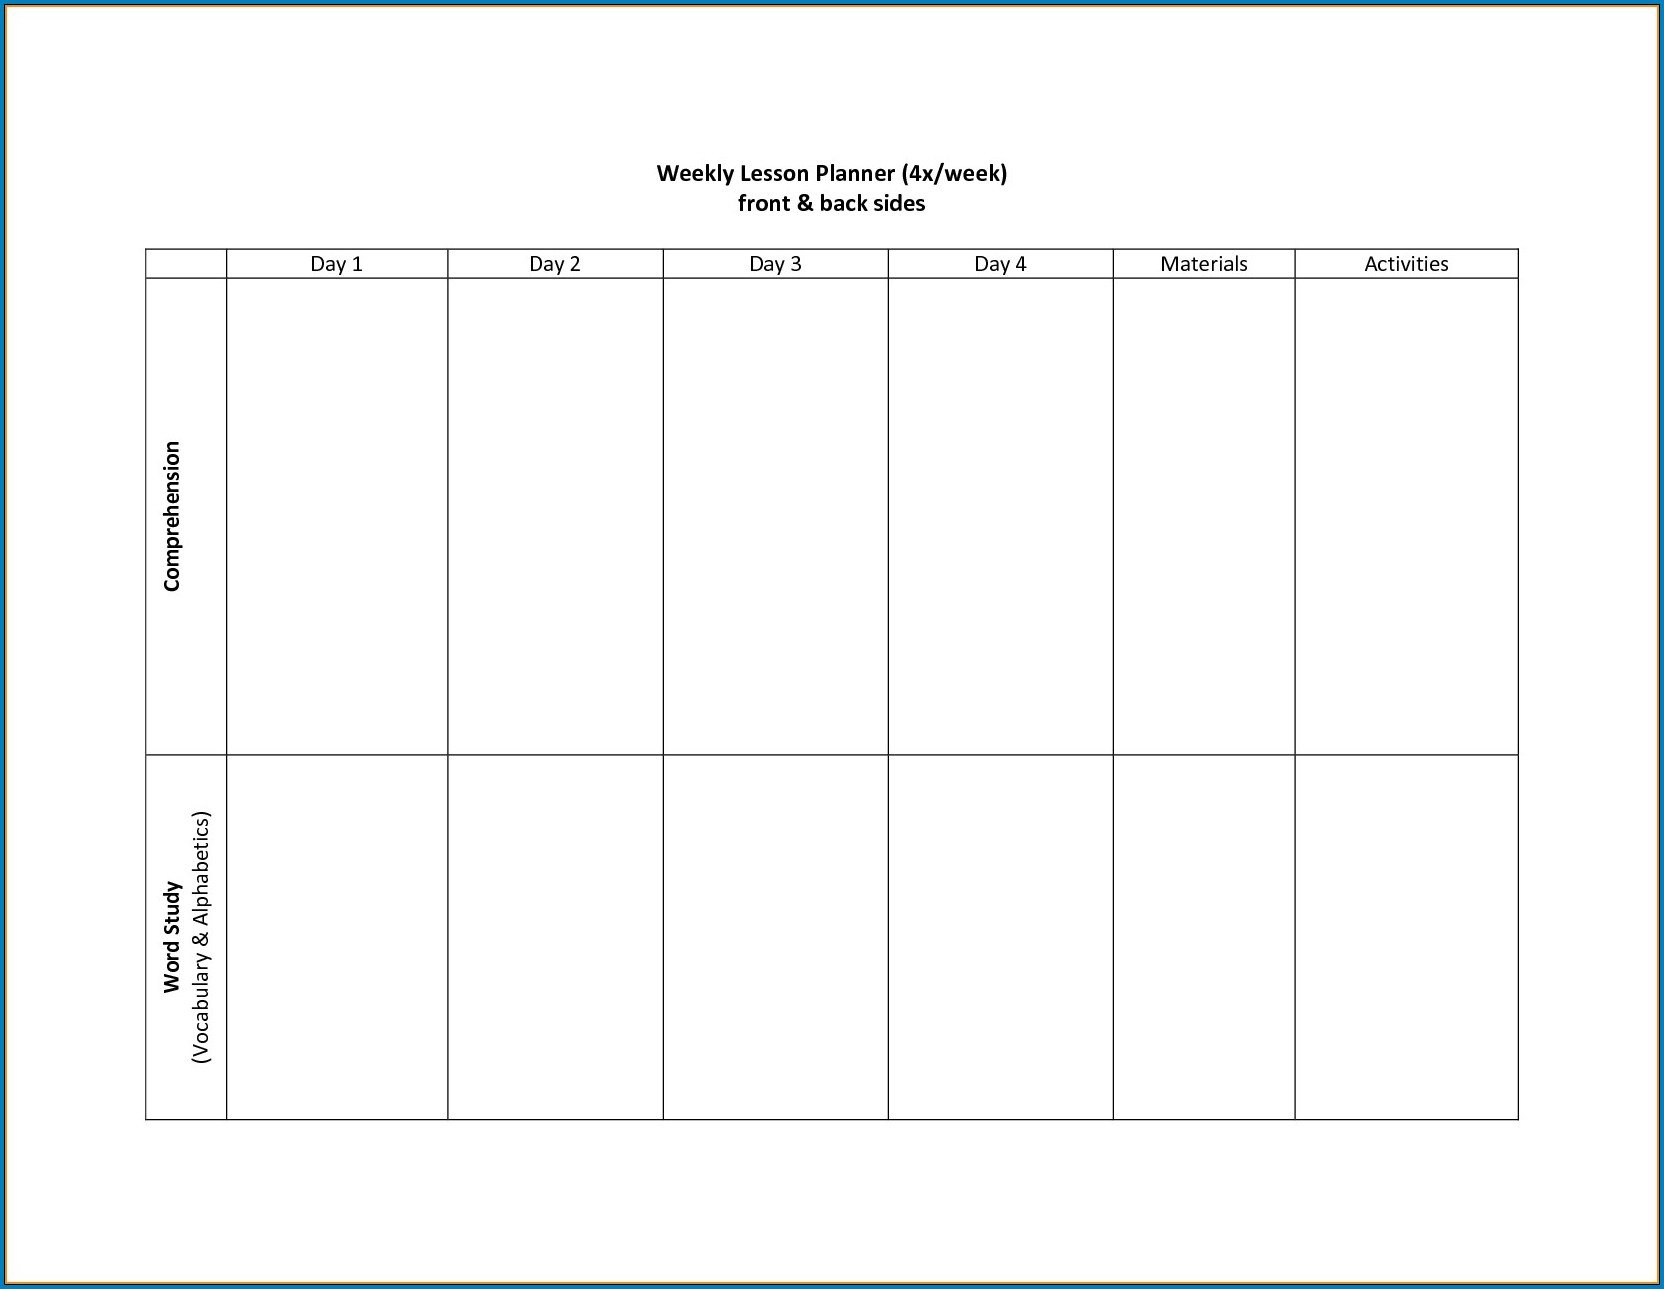 Two Week Schedule Template   Example Calendar Printable Monday To Friday Schedule Template With Four Weeks